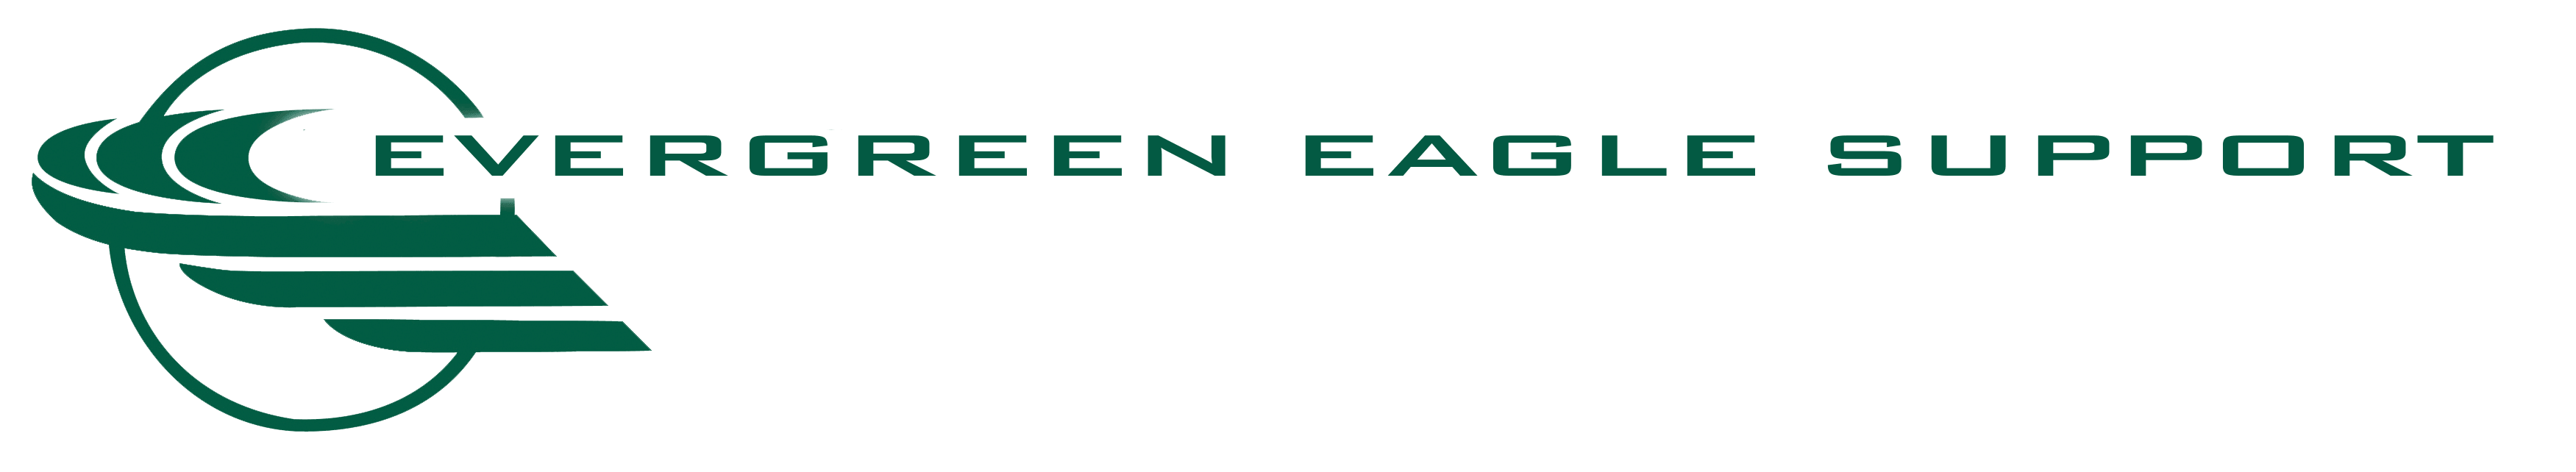 Evergreen Eagle Support